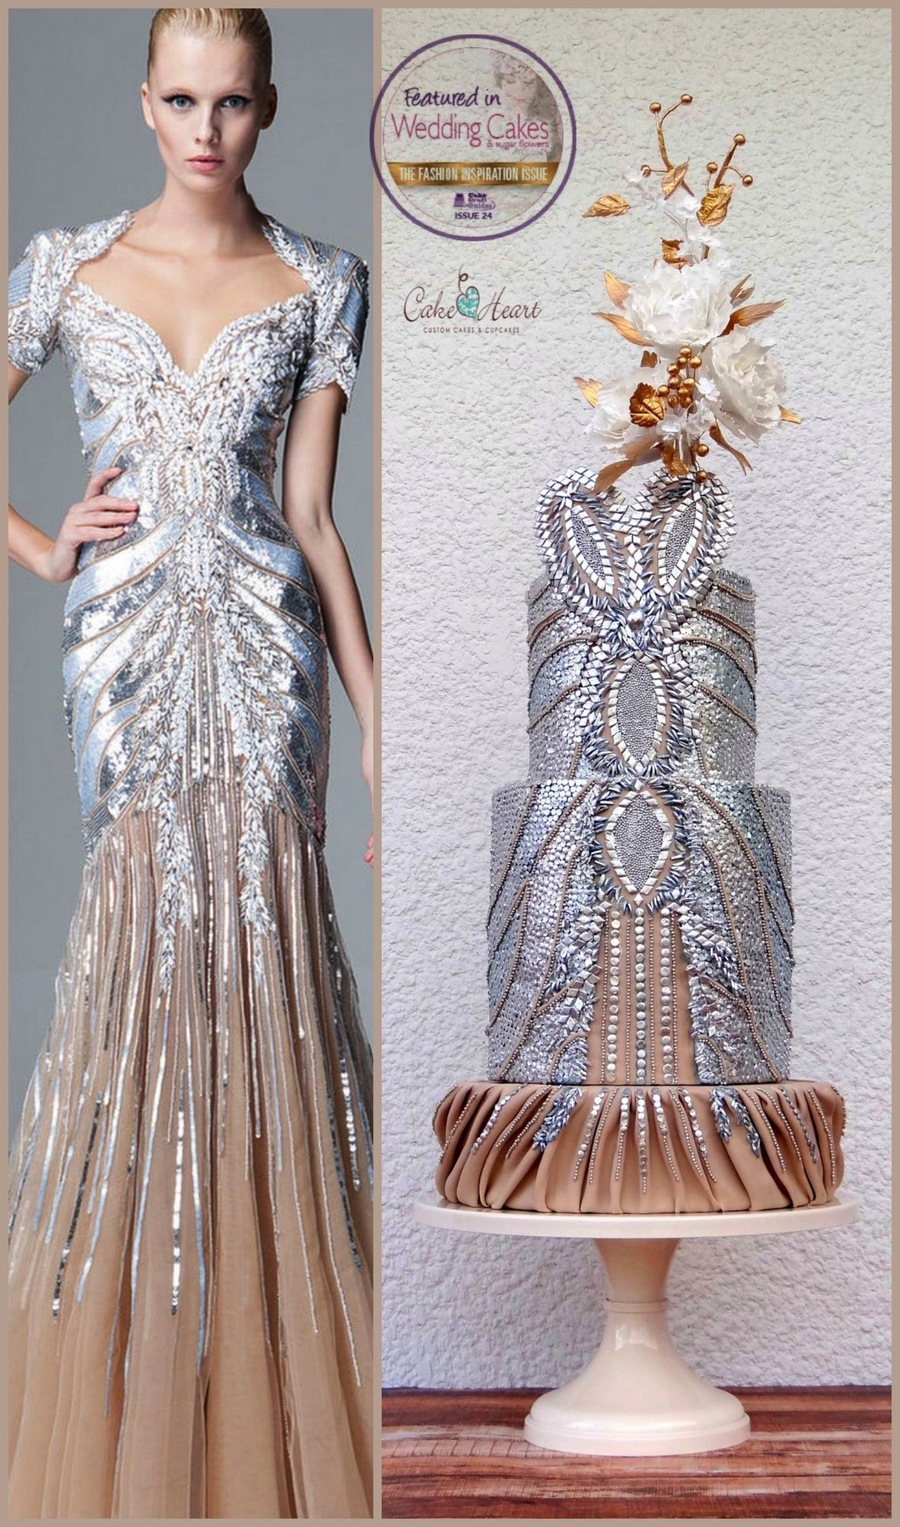 Zuhair Murad Fashion Collaboration Cakecentral Com